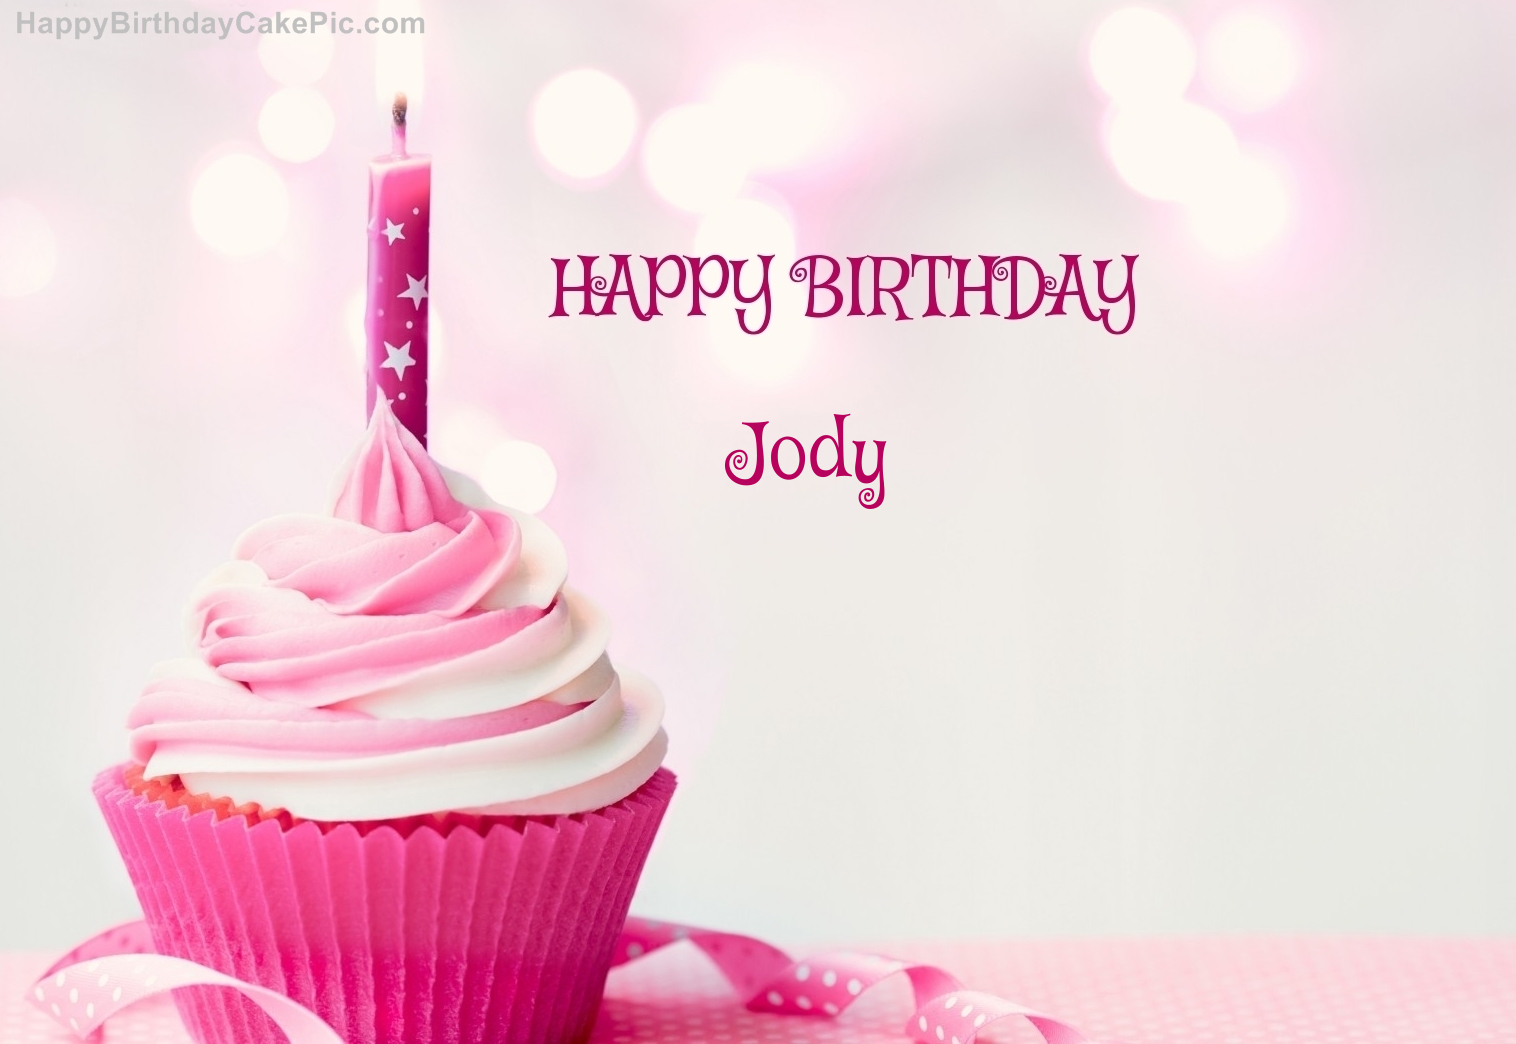 Happy Birthday Cupcake Candle Pink Cake For Jody